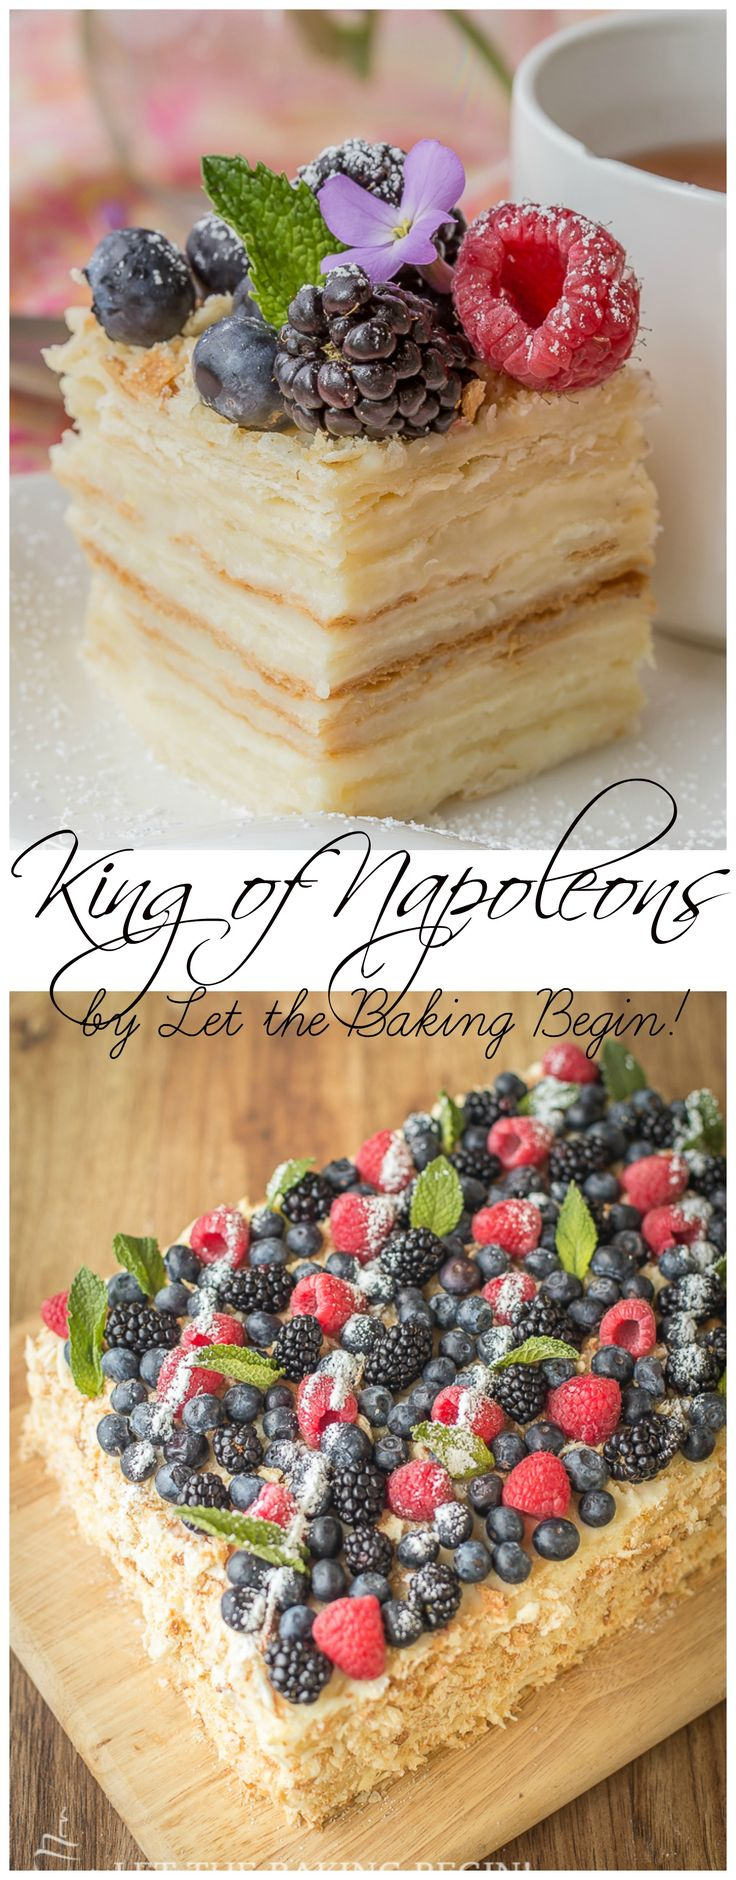 Delicious puff pastry cake, layered with custard & topped with berries.